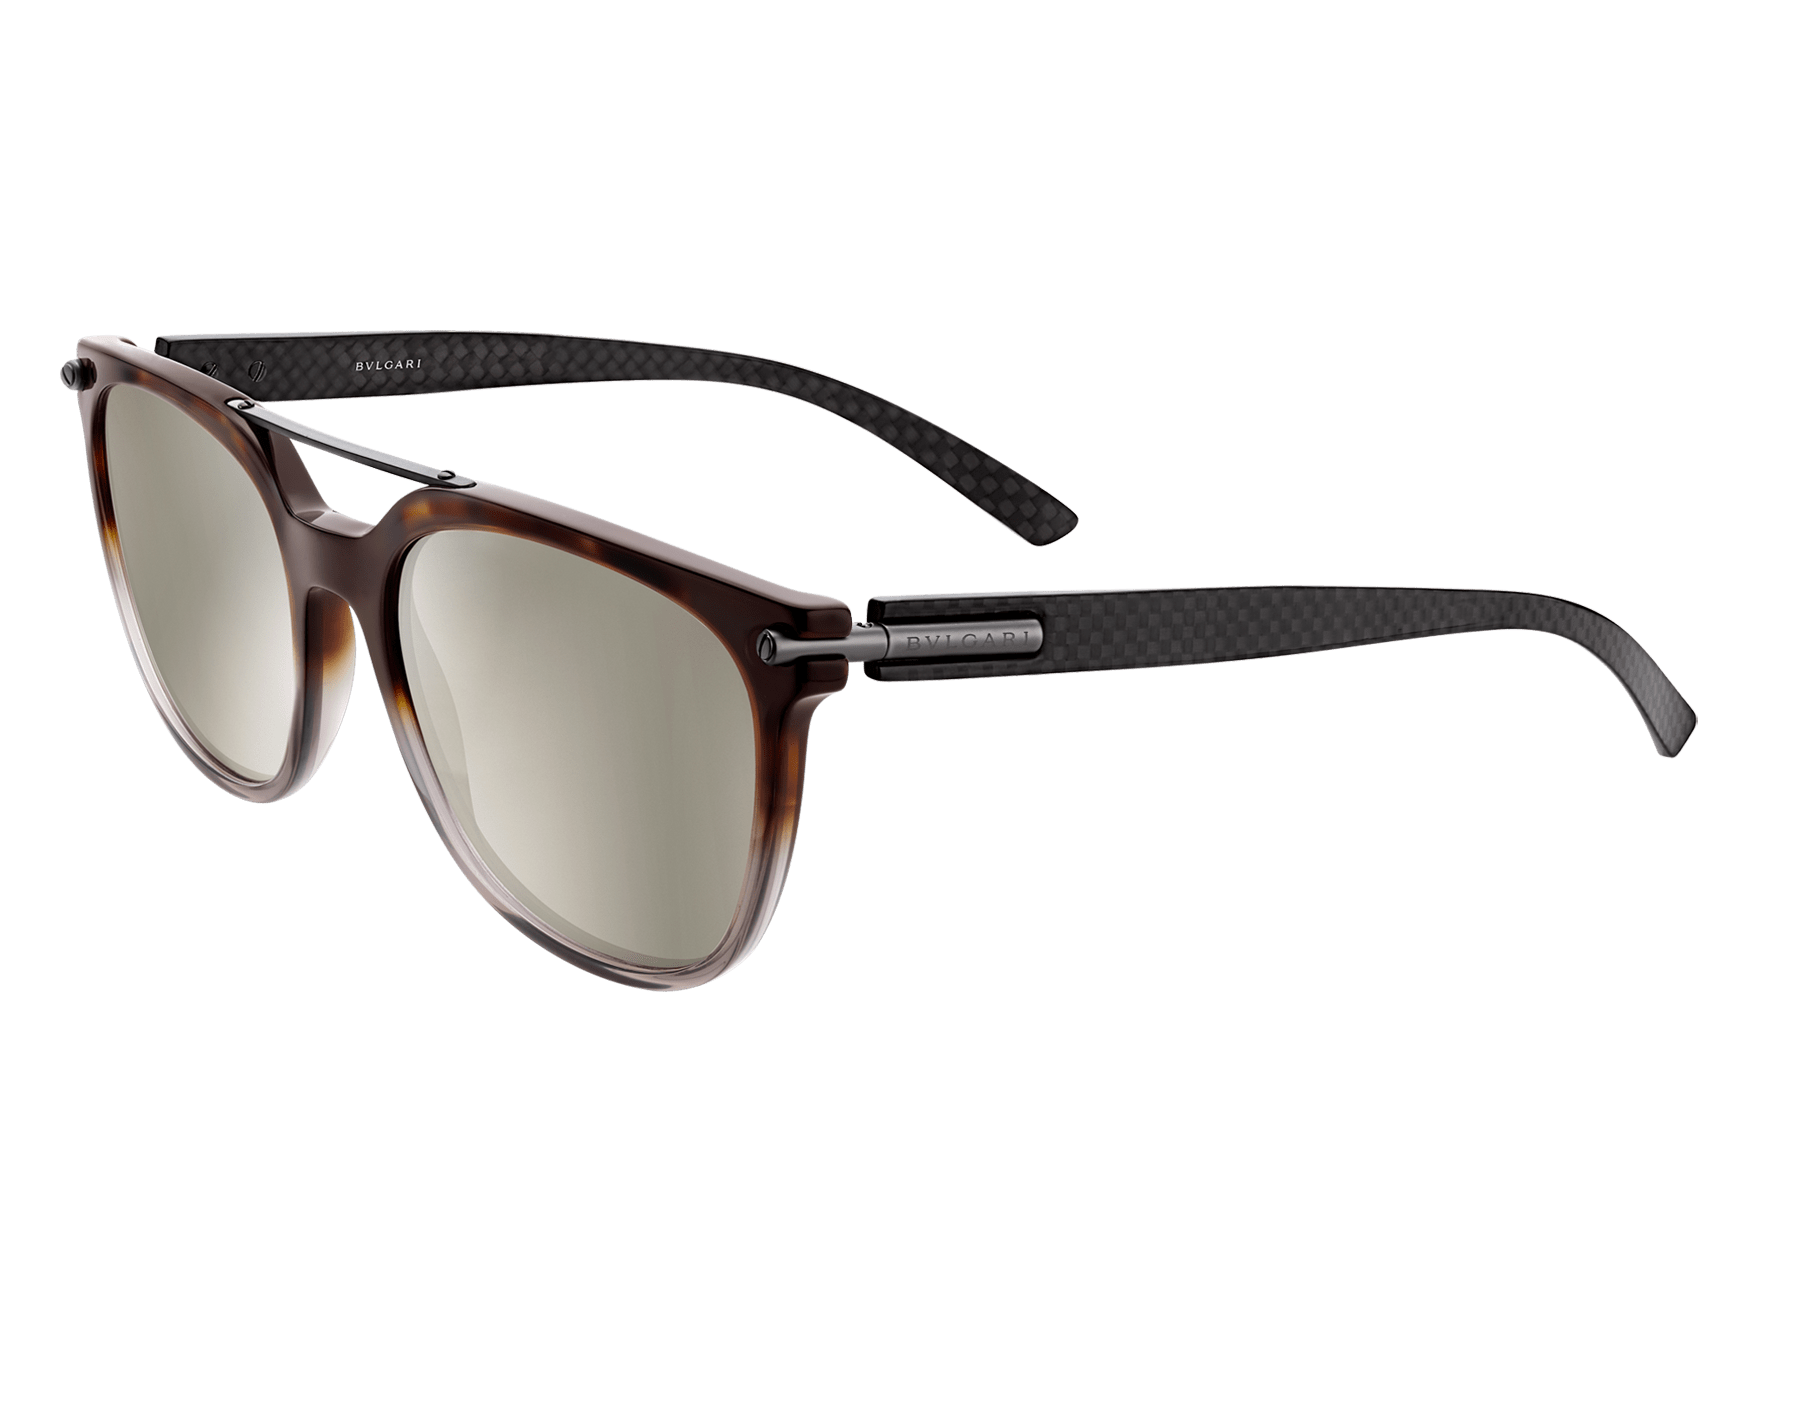 Bulgari Diagono squared acetate sunglasses with metal double bridge and carbon fiber arms. 903908 image 1